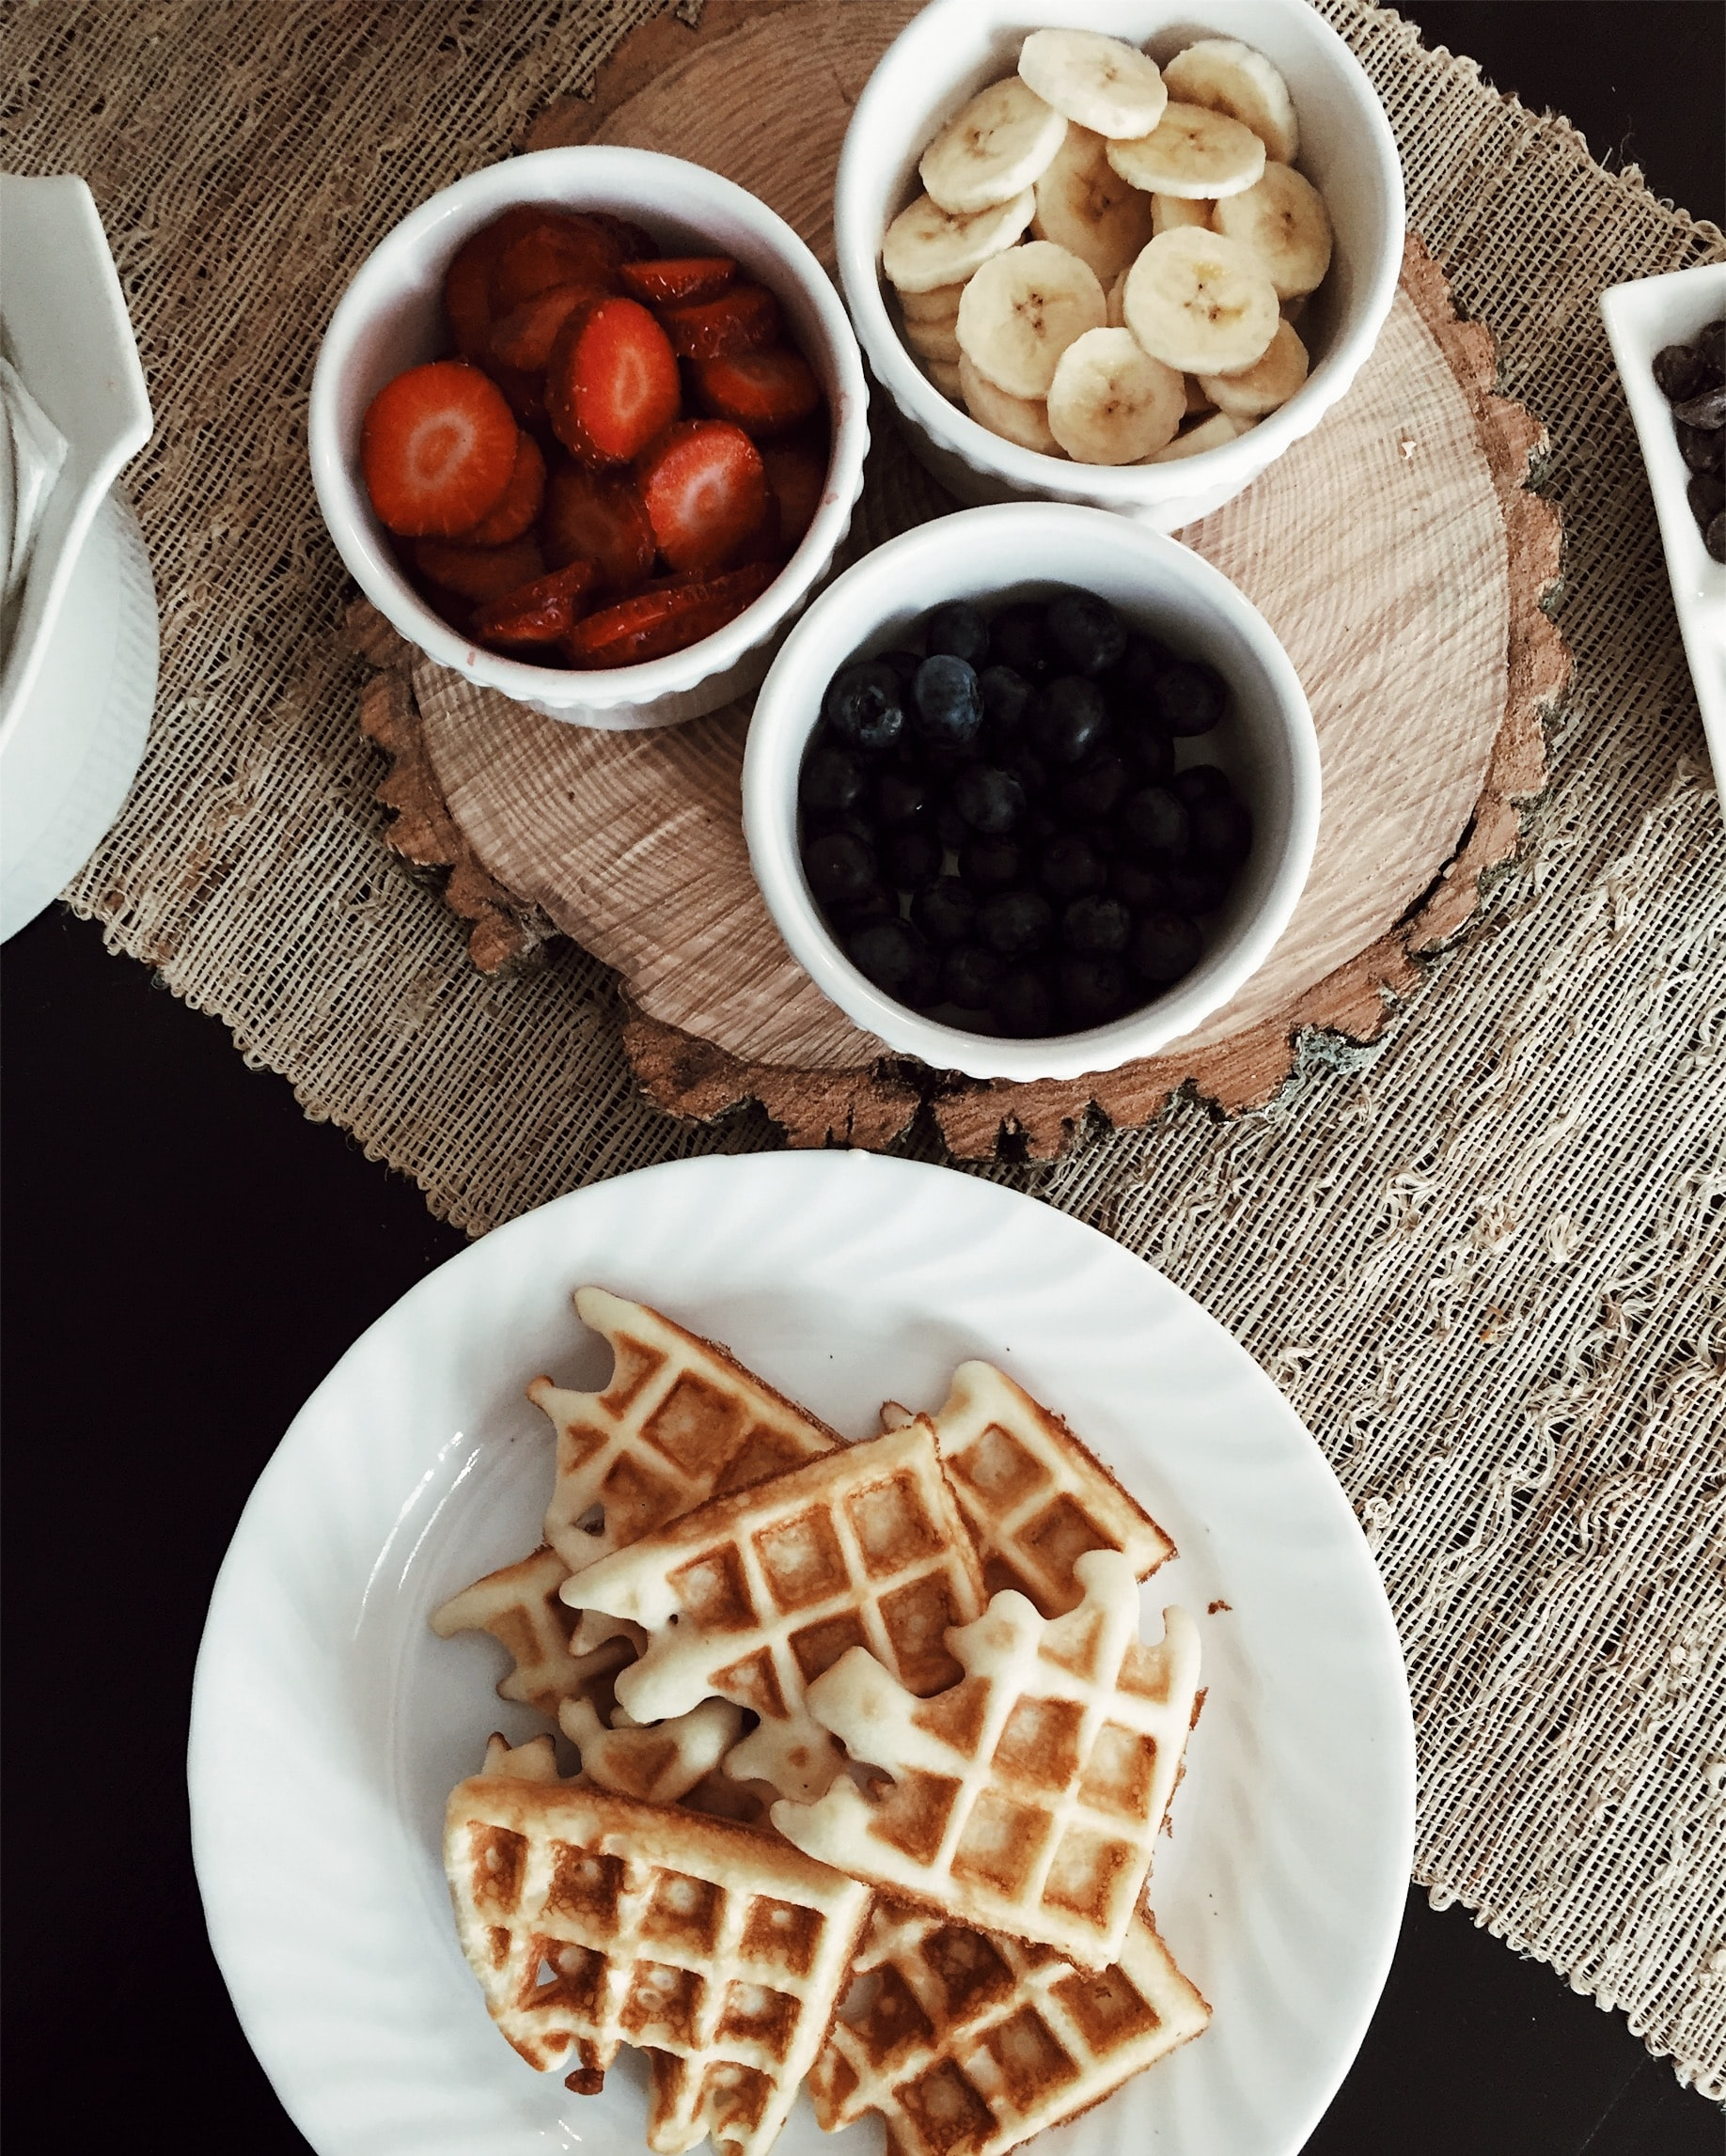 photo of waffles beside bowls of strawberries, banana, and black berries